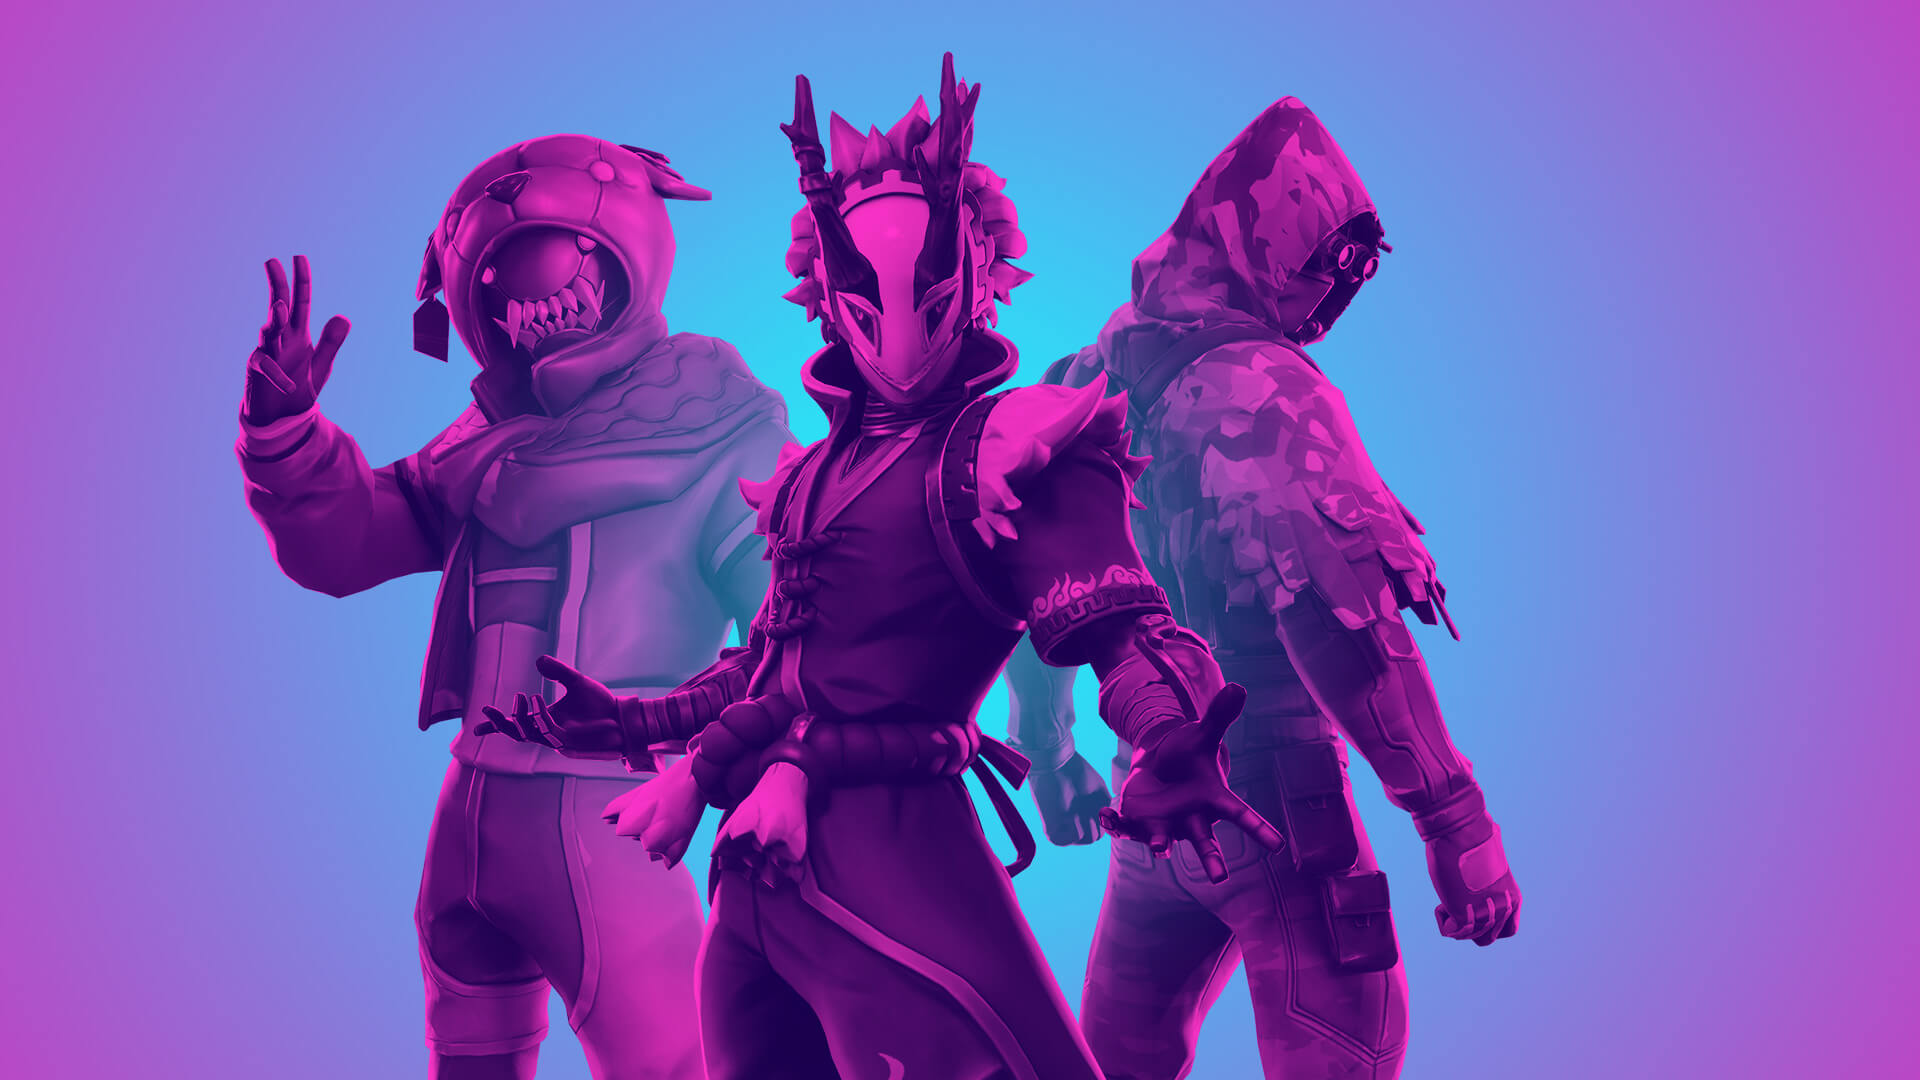 Fortnite Champion Series art with three characters standing on a blue background with a purple haze over the image.